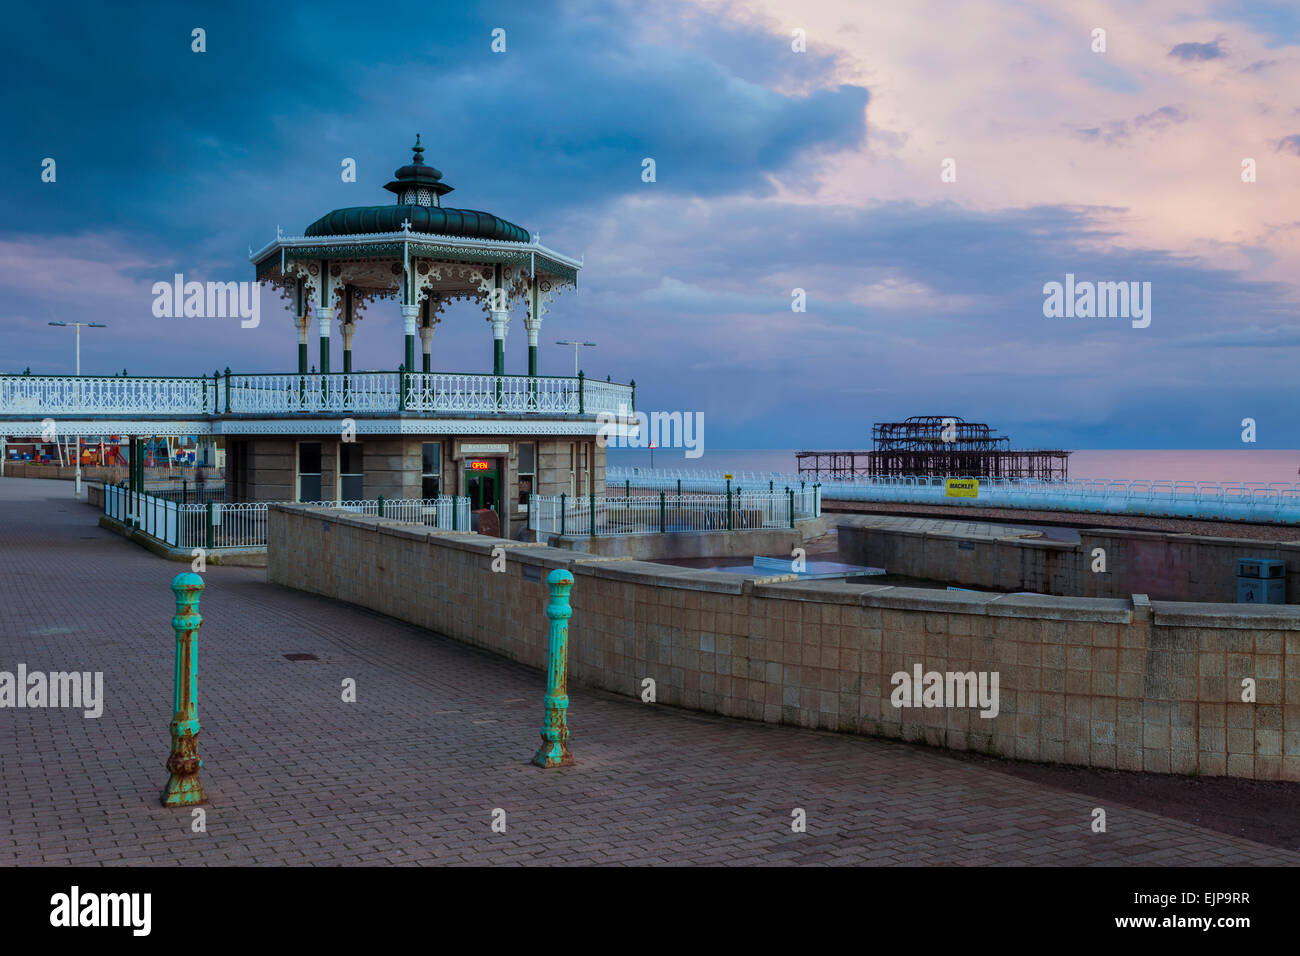 Soir sur le front de mer de Brighton, East Sussex, Angleterre. Photo Stock